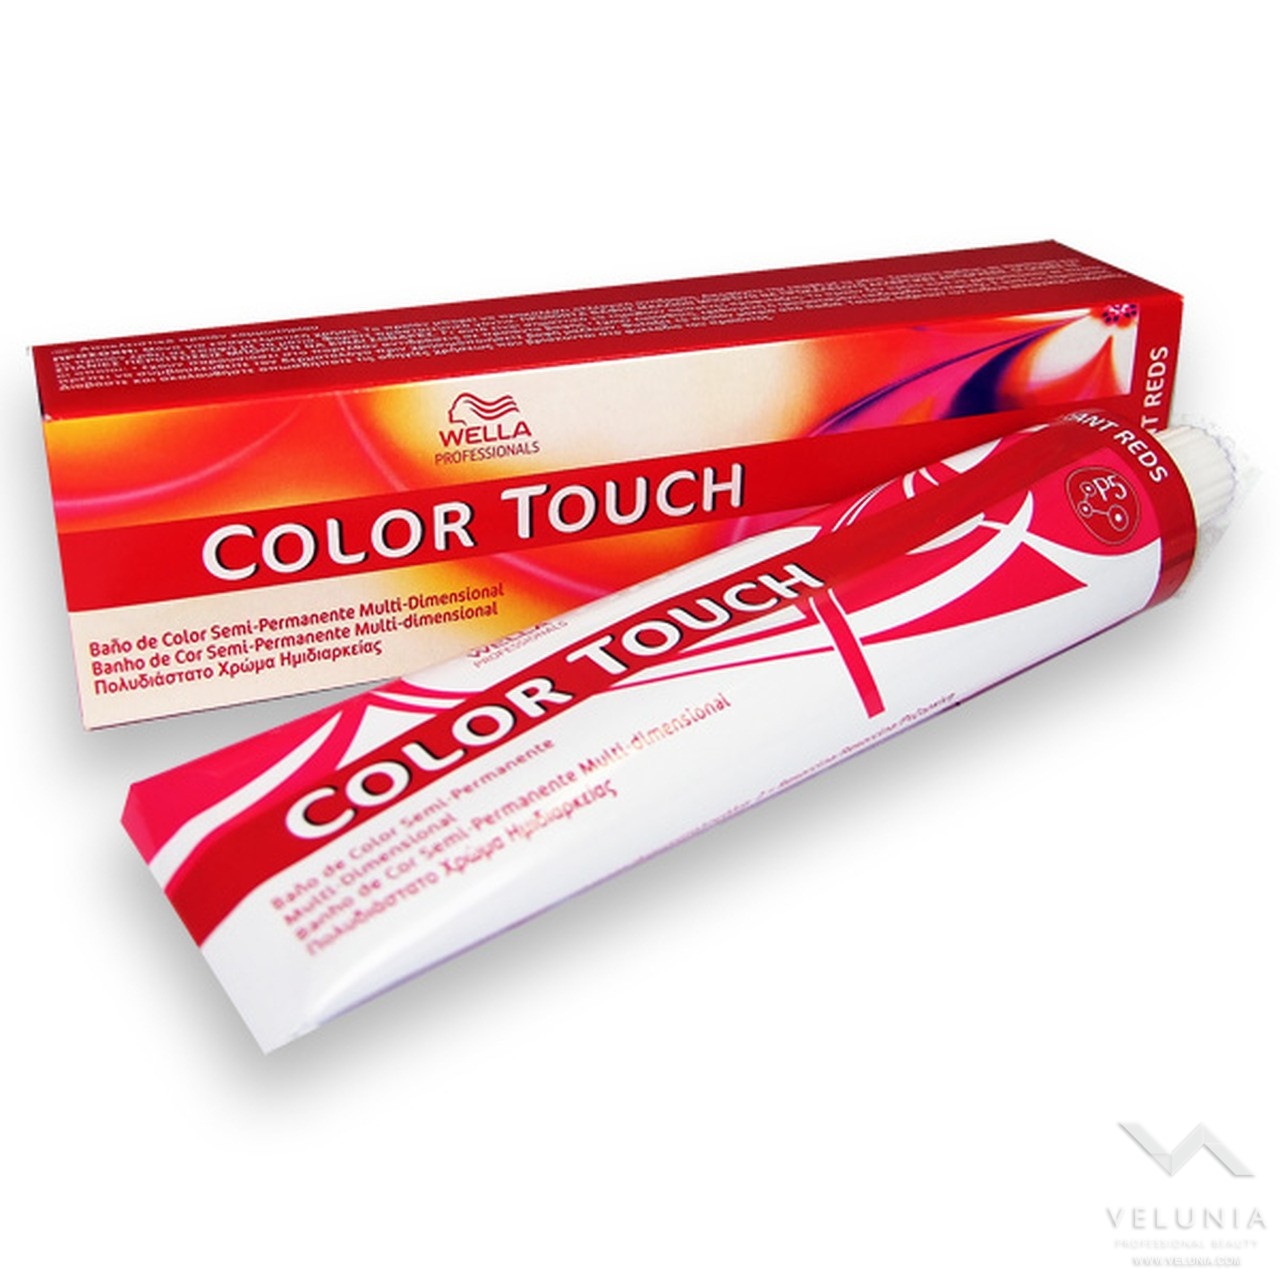 Wella Color Touch - 7/7 Biondo Medio Sabbia 1